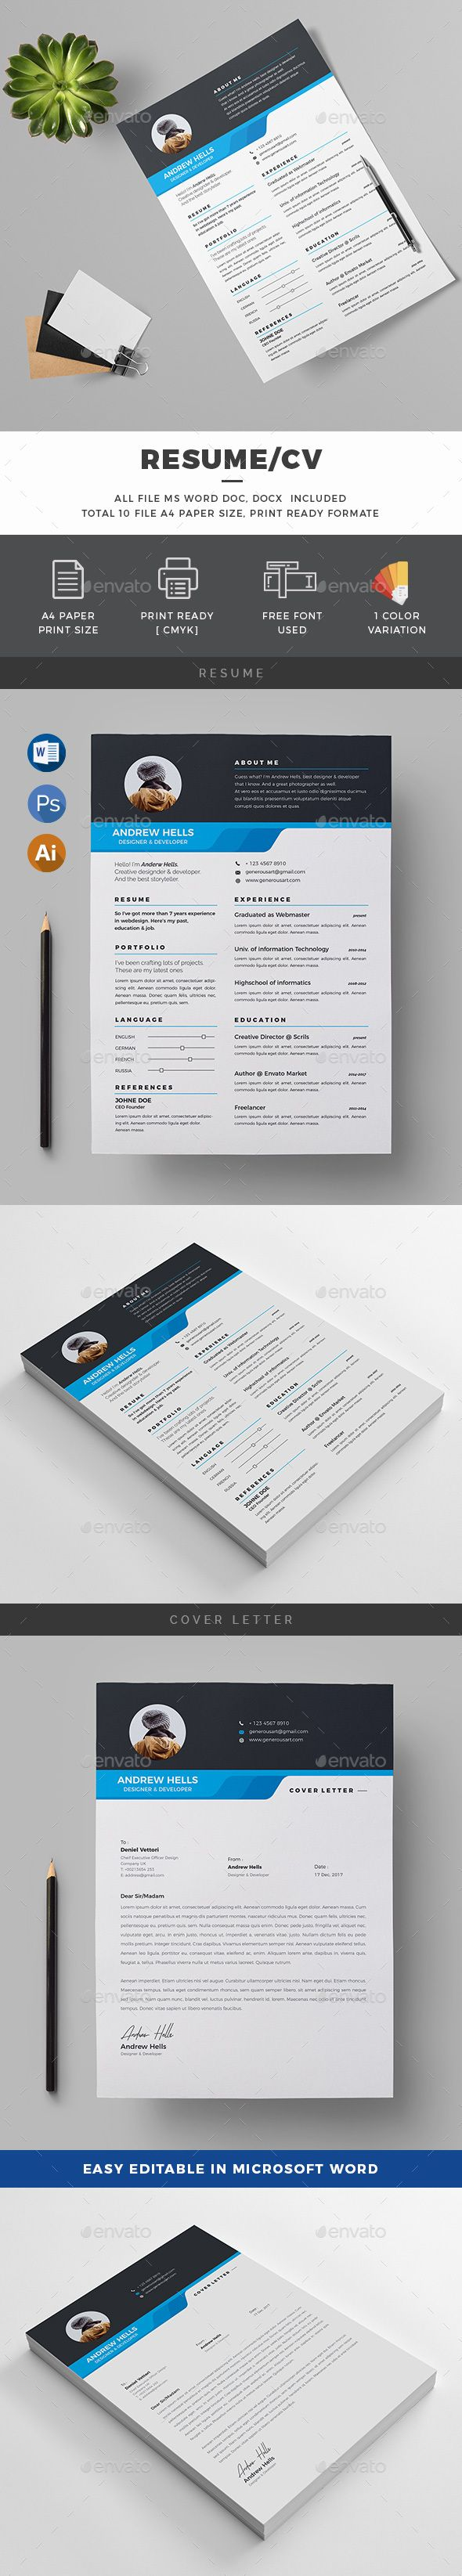 Resume | Template, Ai illustrator and Resume cv